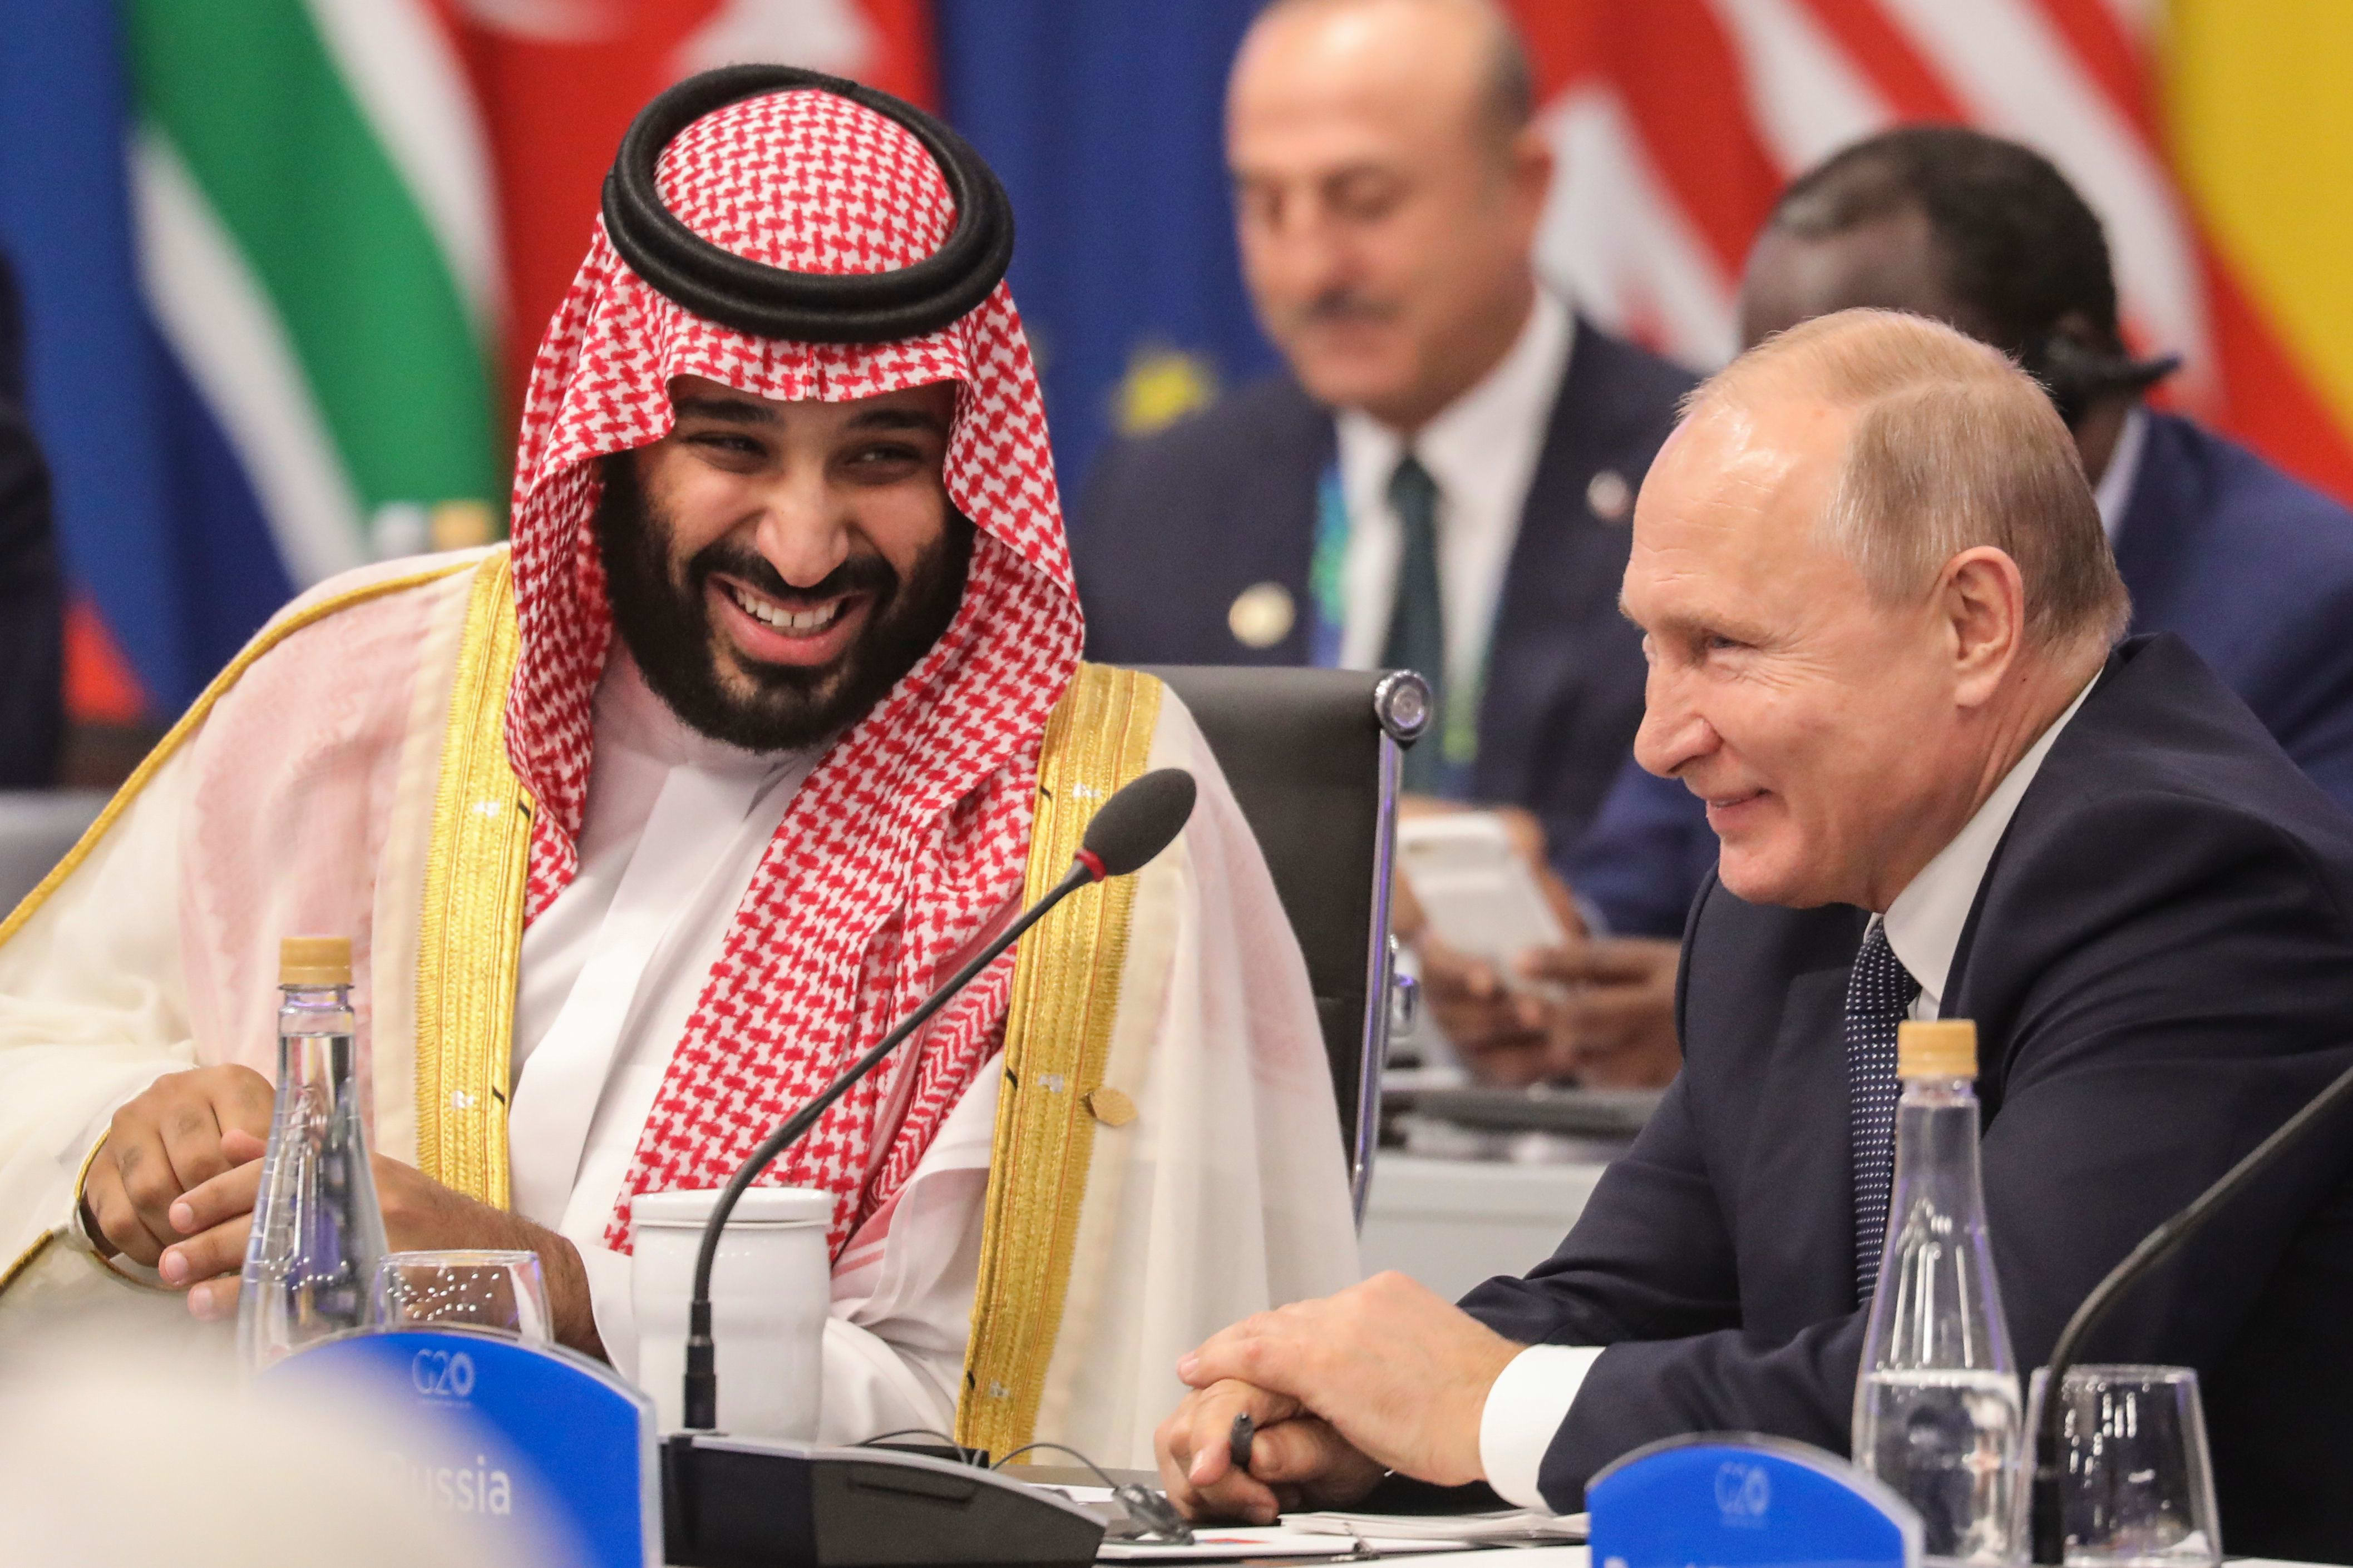 Trump says he spoke to Putin, MBS and expects a 10 million barrel cut